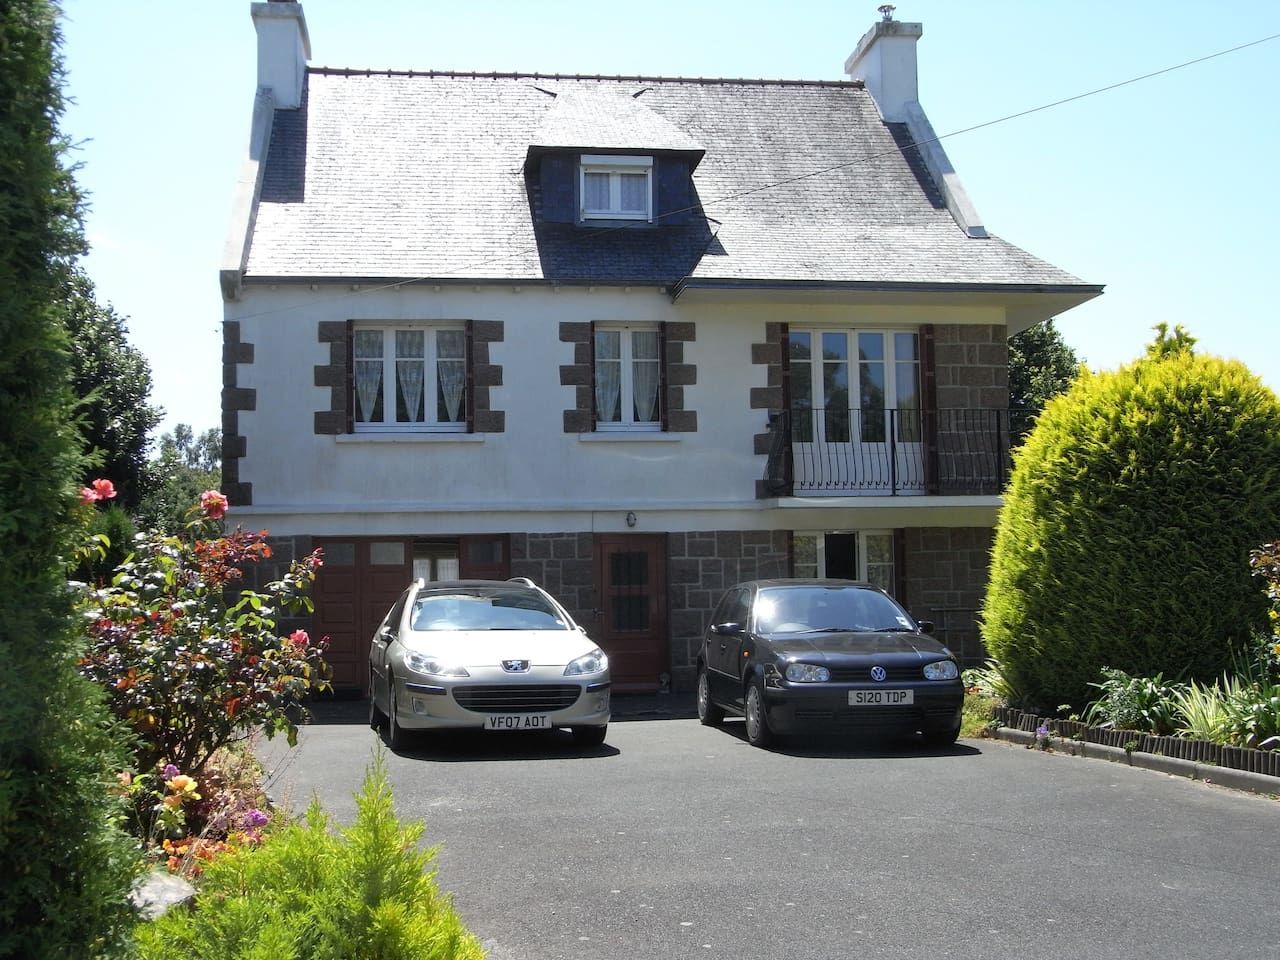 'Les Rosiers' - a lovely family home in a coastal setting